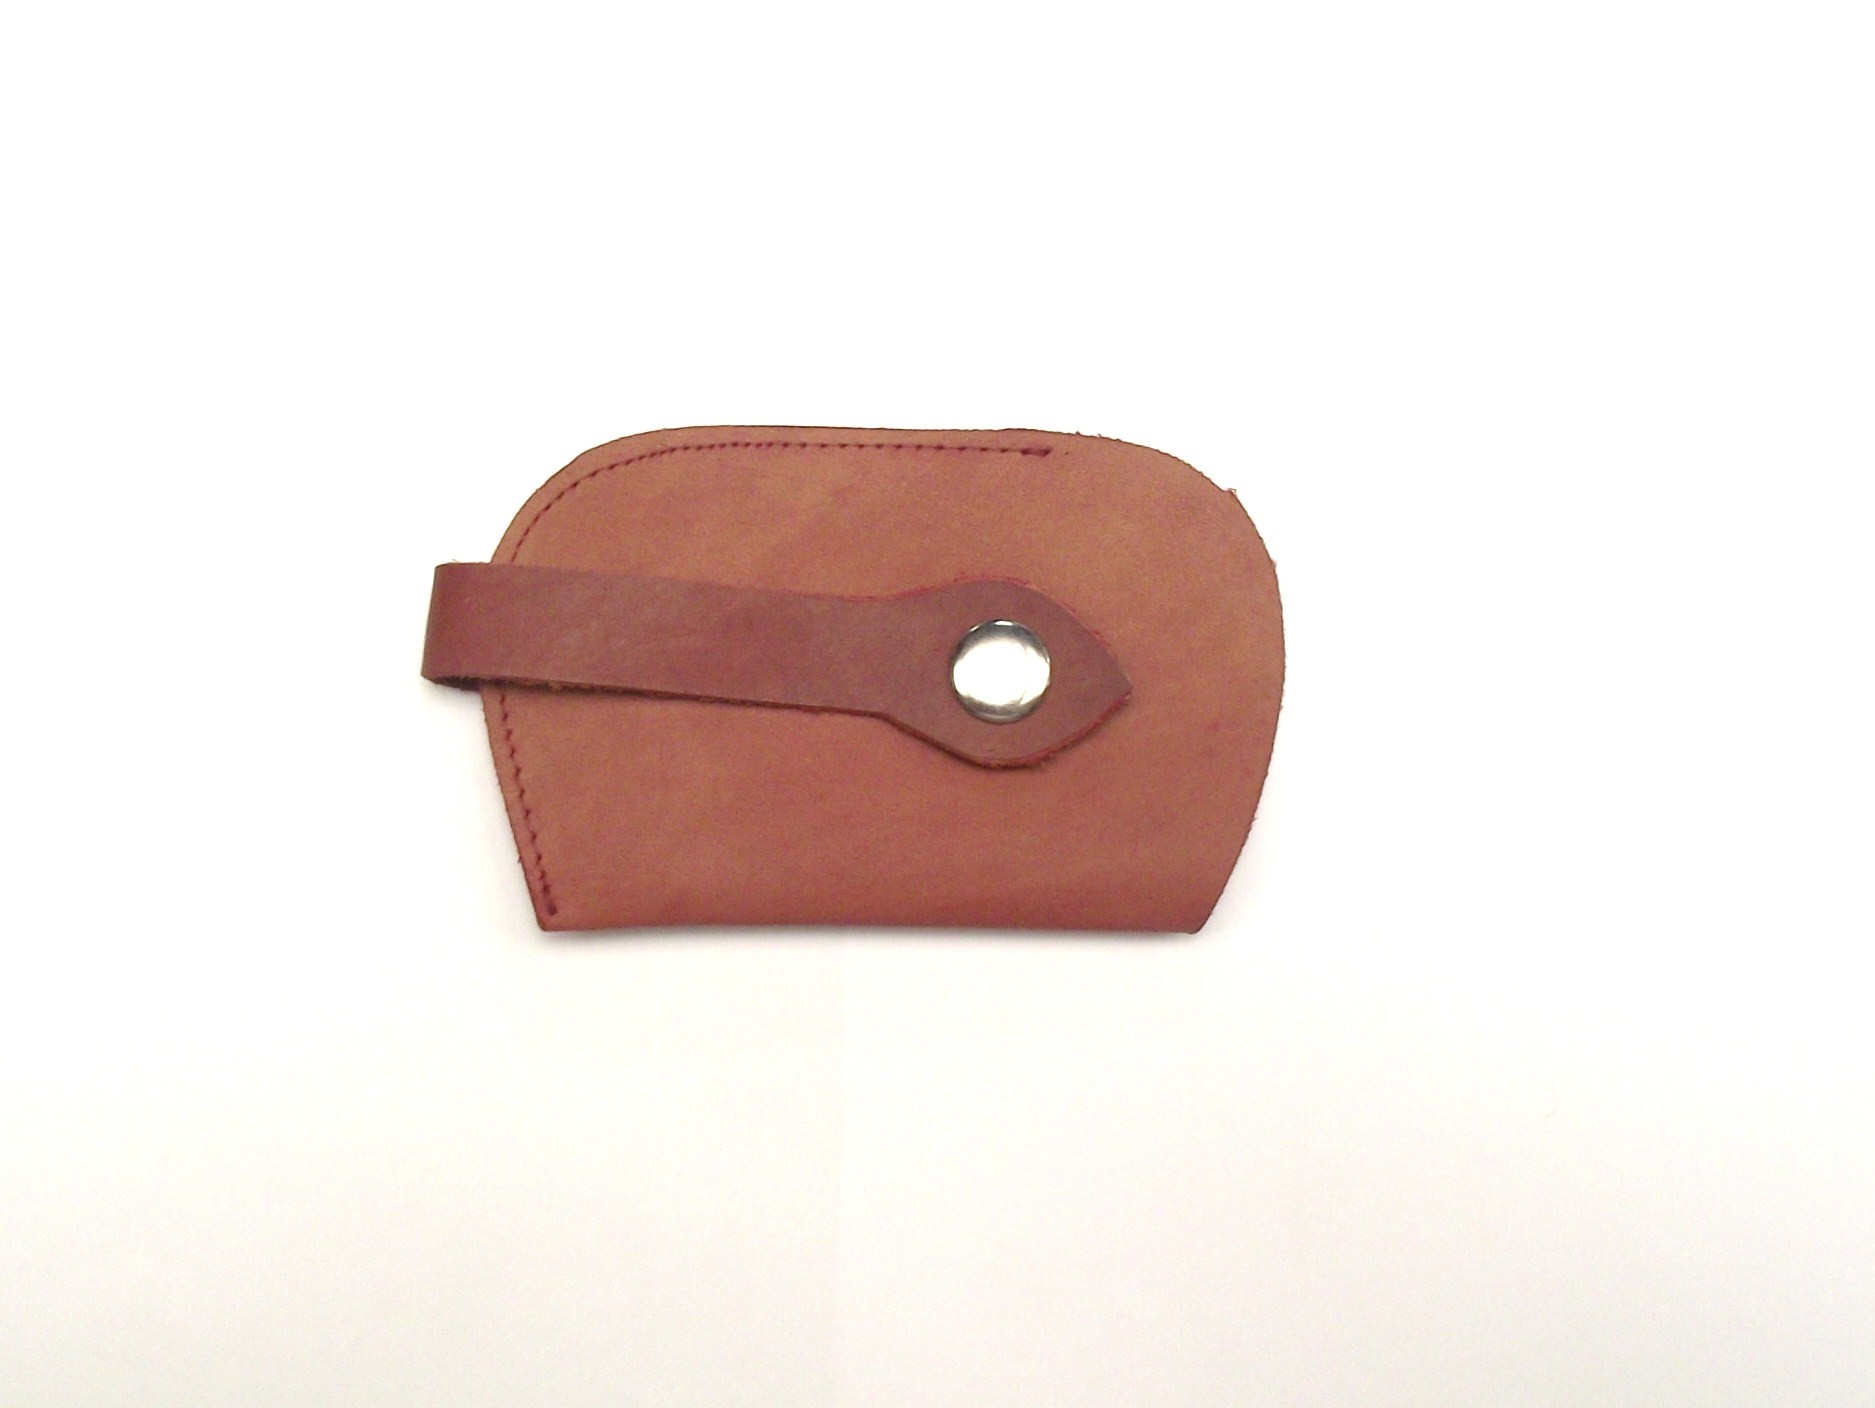 BROWN LEATHER KEY HOLDER, PERSONALISE WITH YOUR TELEPHONE NUMBER (IF LOST)